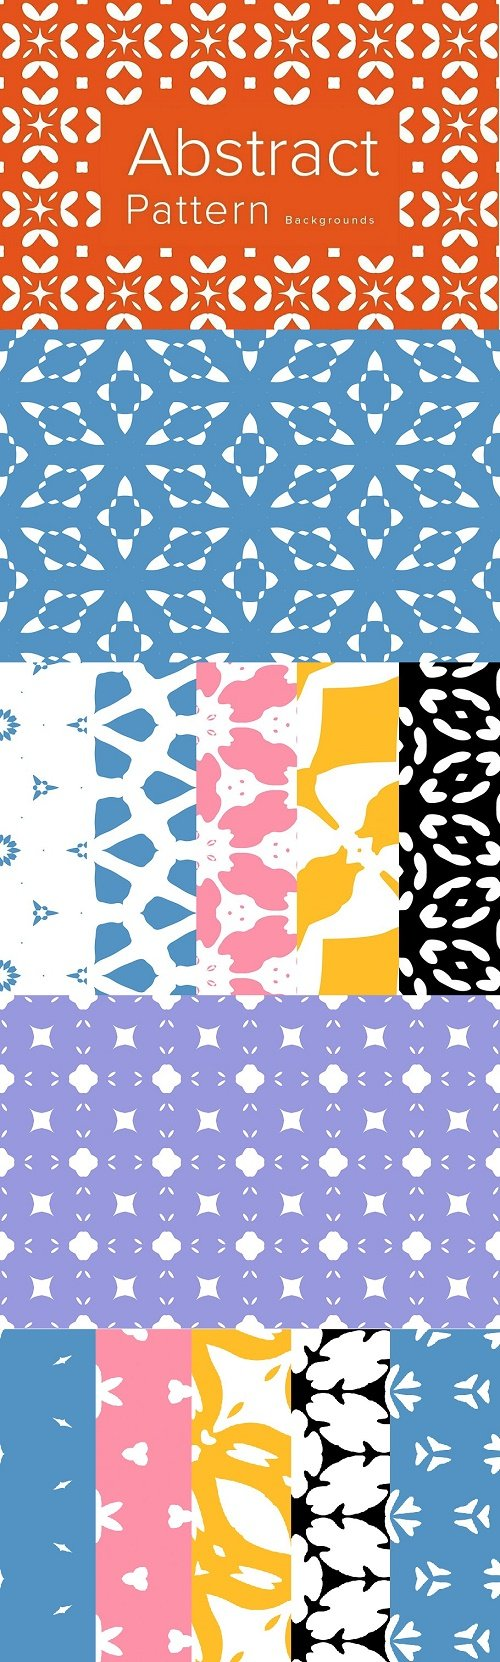 Abstract pattern backgrounds - 3855984